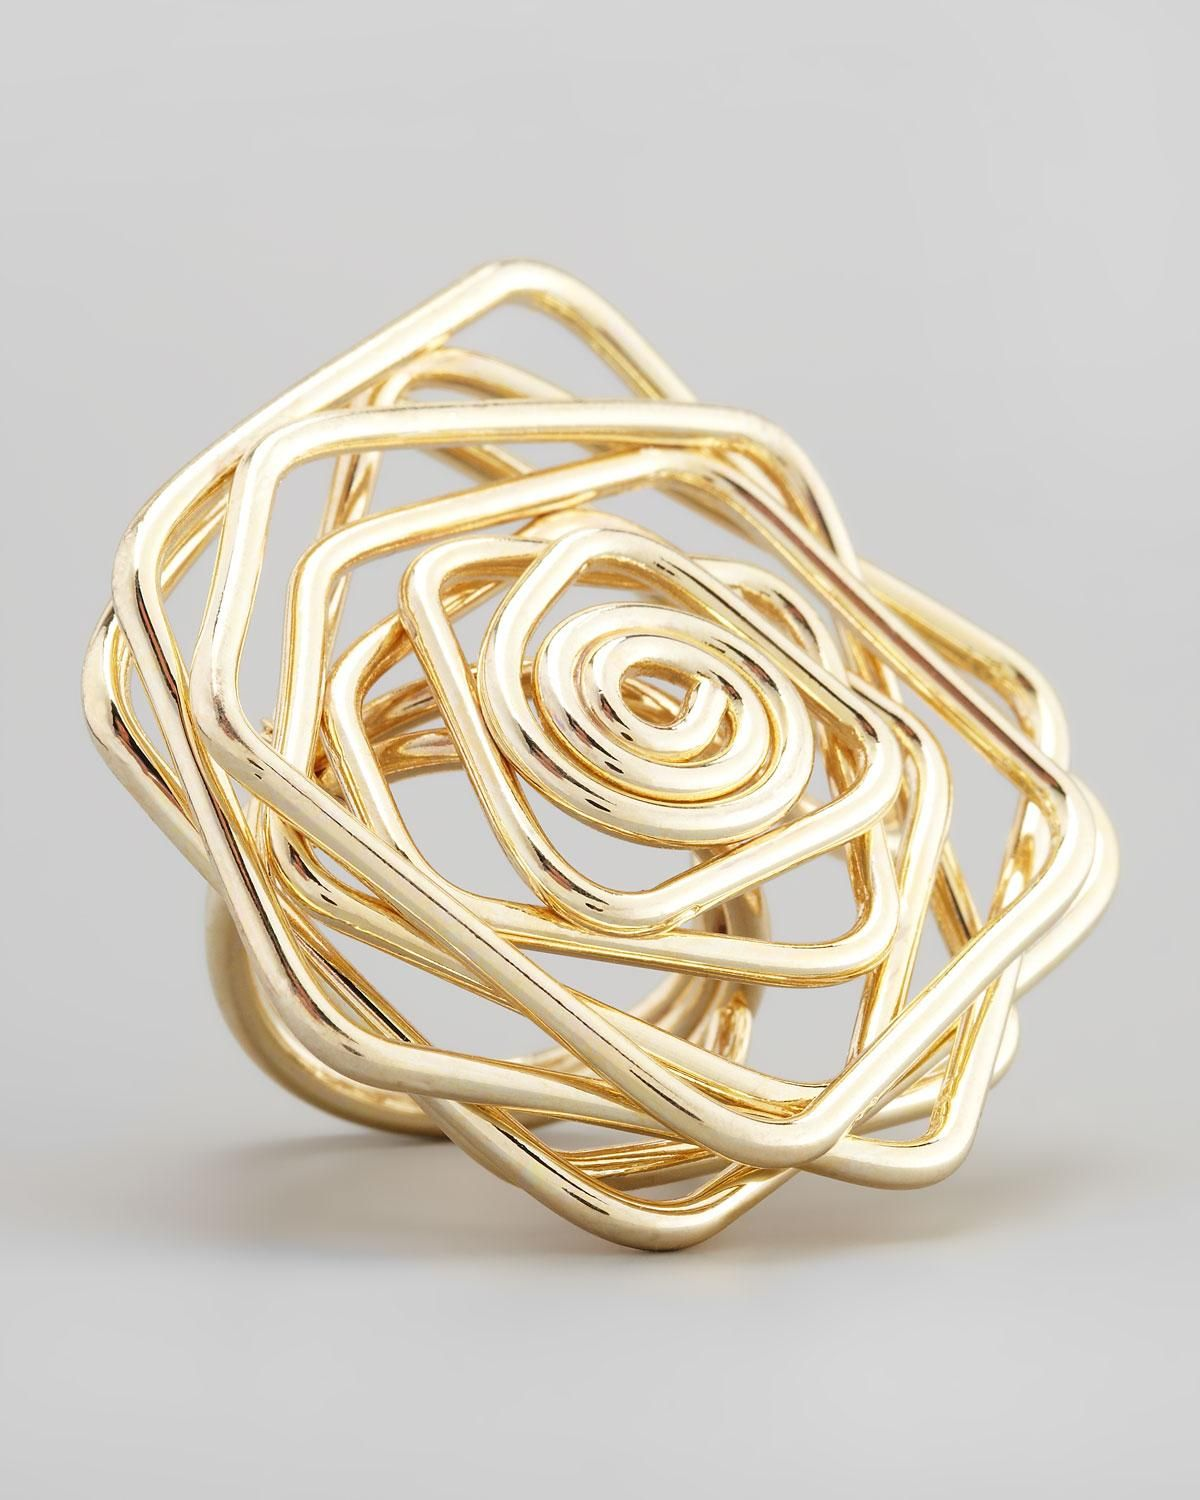 Panacea - Twisted Wire Flower Ring - cusp.com | needful things ...